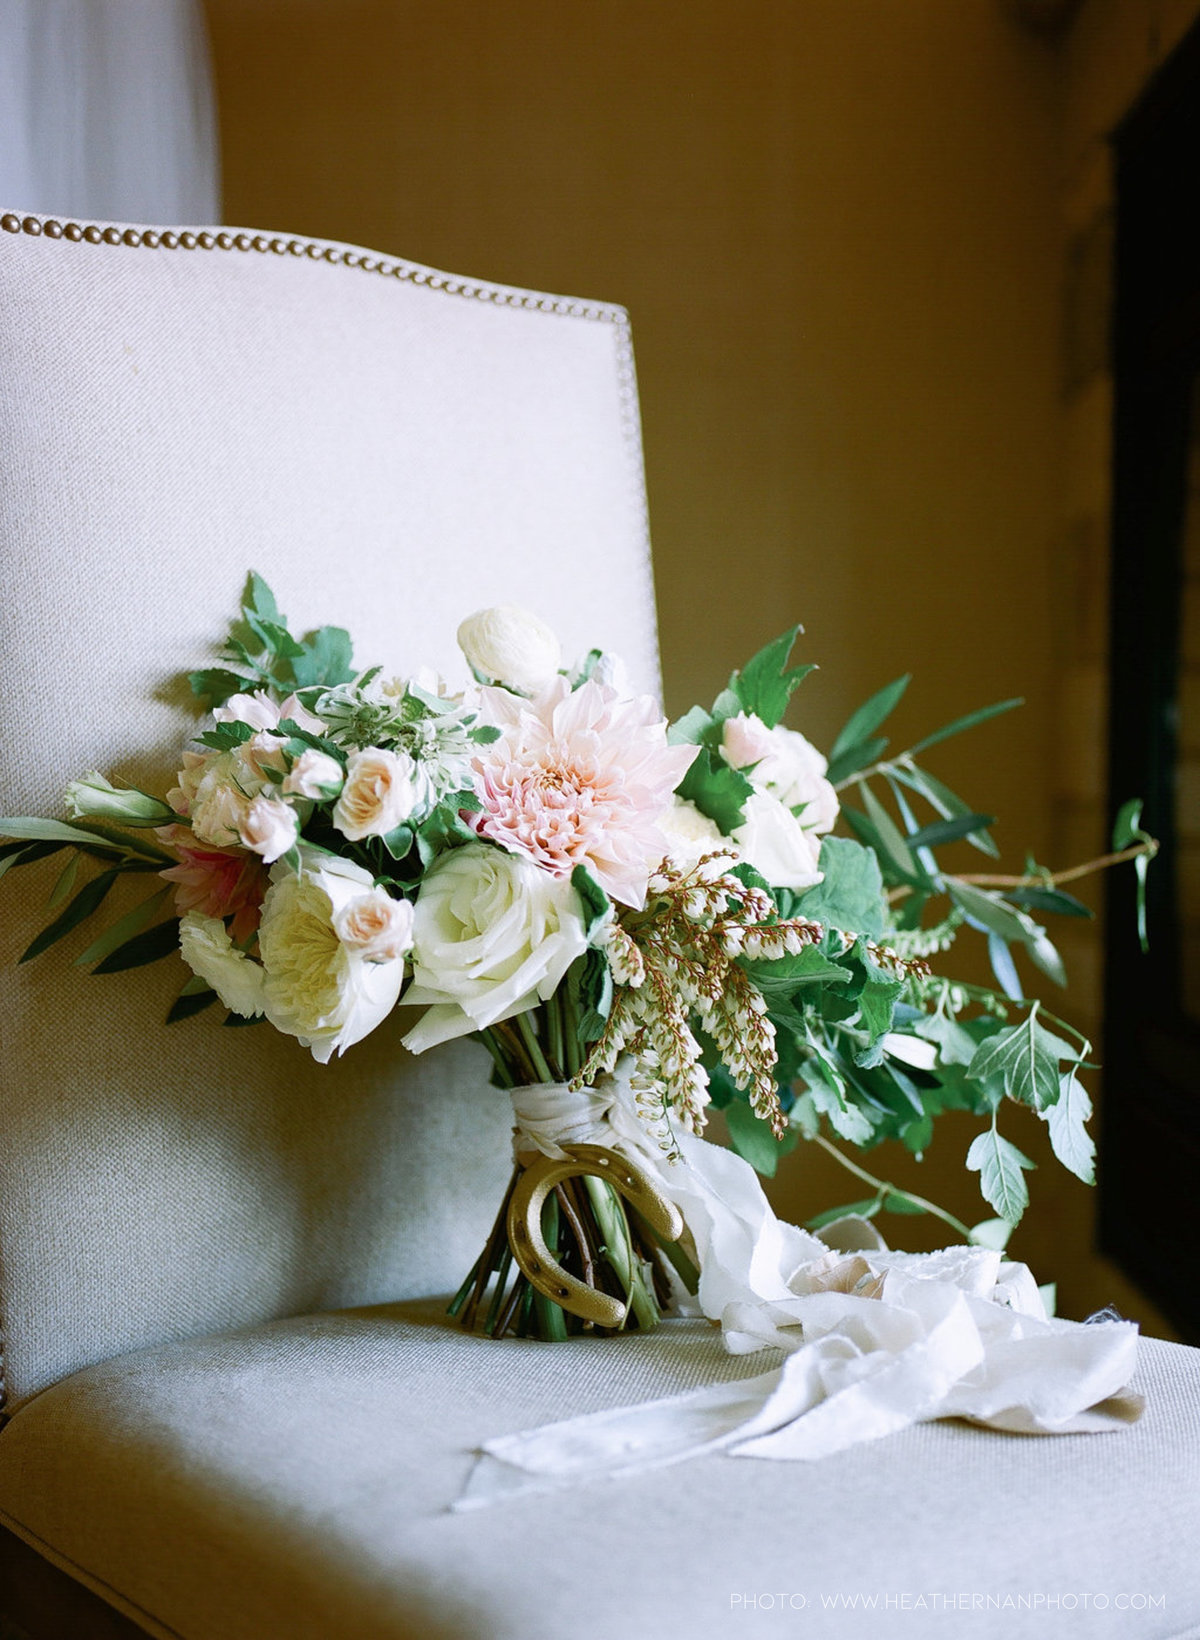 Utah Florist_Summer Weddings in Park City_Romantic Wedding_Luxe Mountain Weddings_Stein Eriksen Lodge Weddings_Artisan Bloom-0010